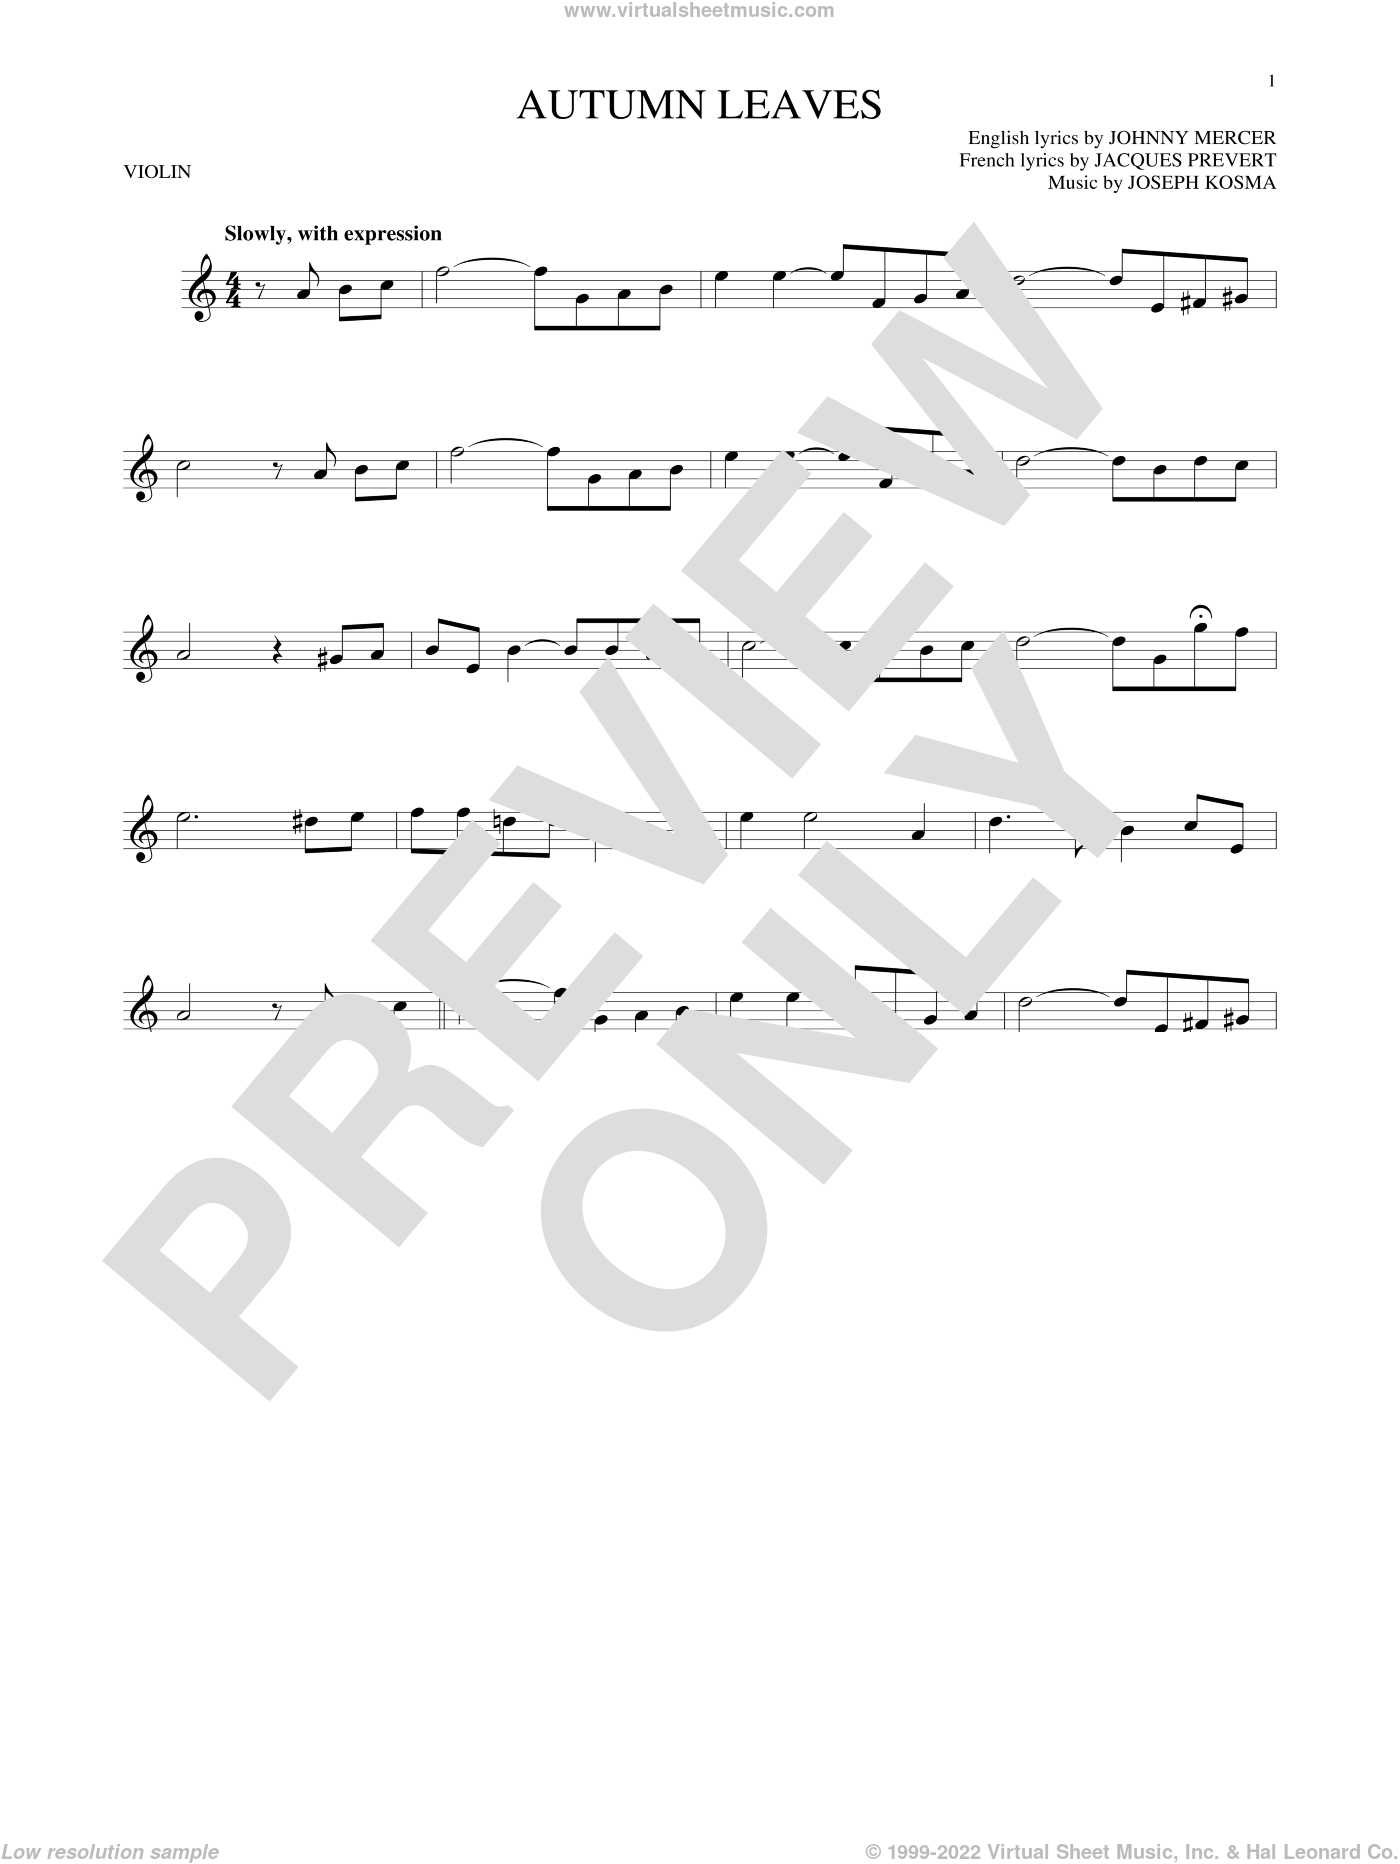 Autumn Leaves sheet music for violin solo by Johnny Mercer, Mitch Miller, Roger Williams, Steve Allen & George Cates, Jacques Prevert and Joseph Kosma, intermediate skill level